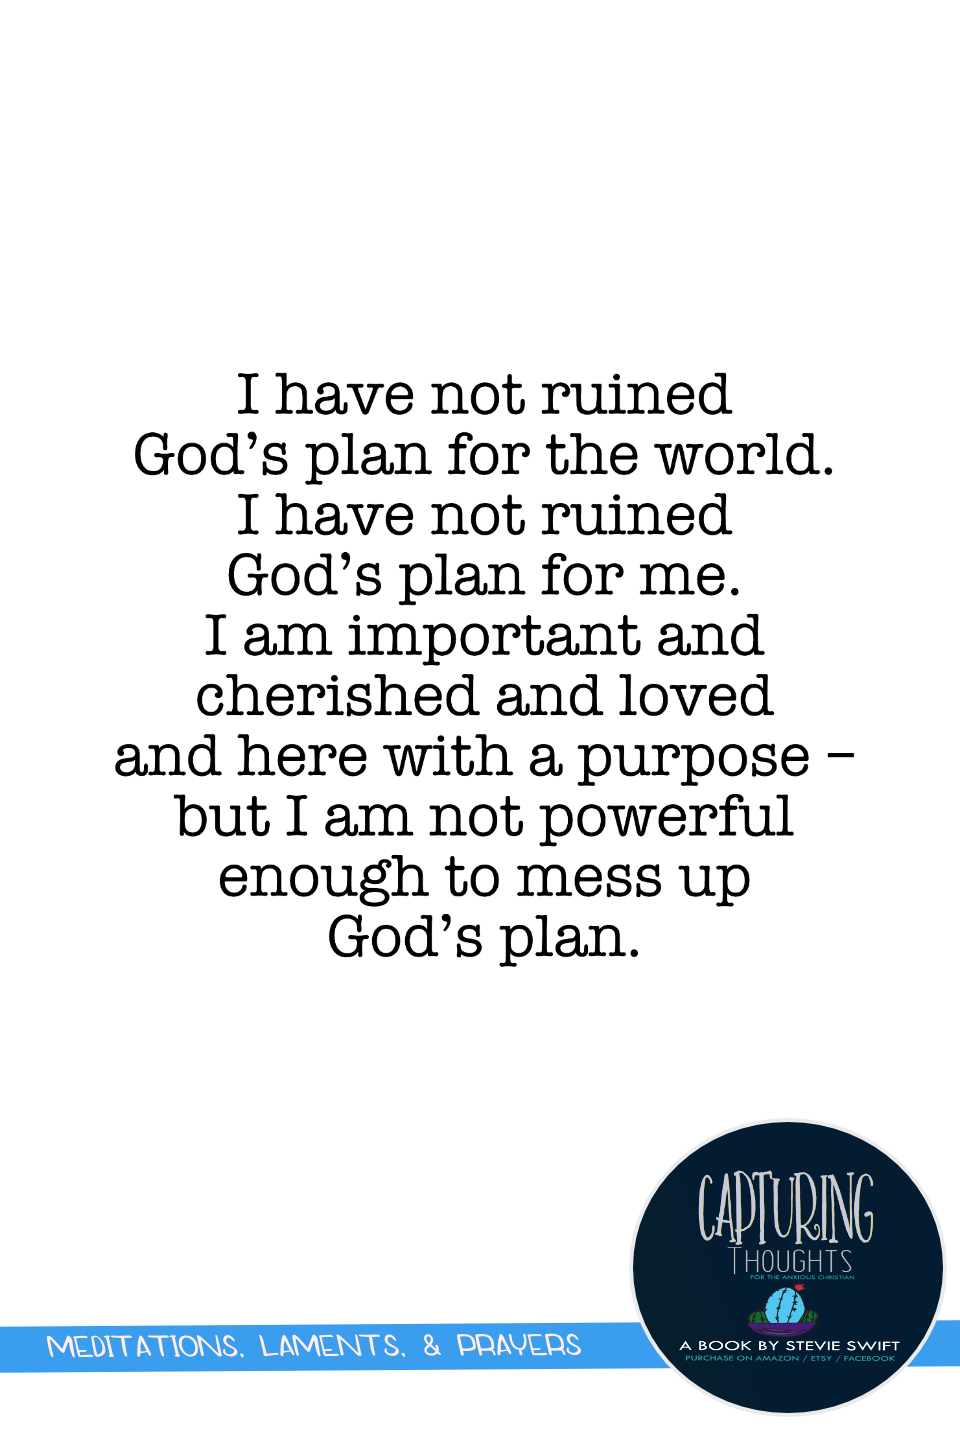 i have not ruined god's plan for the world. i have not ruined gods plan for me. i am important and cherished and loved and here iwth a purpose - but i am not powerful enough to mess up god's plan